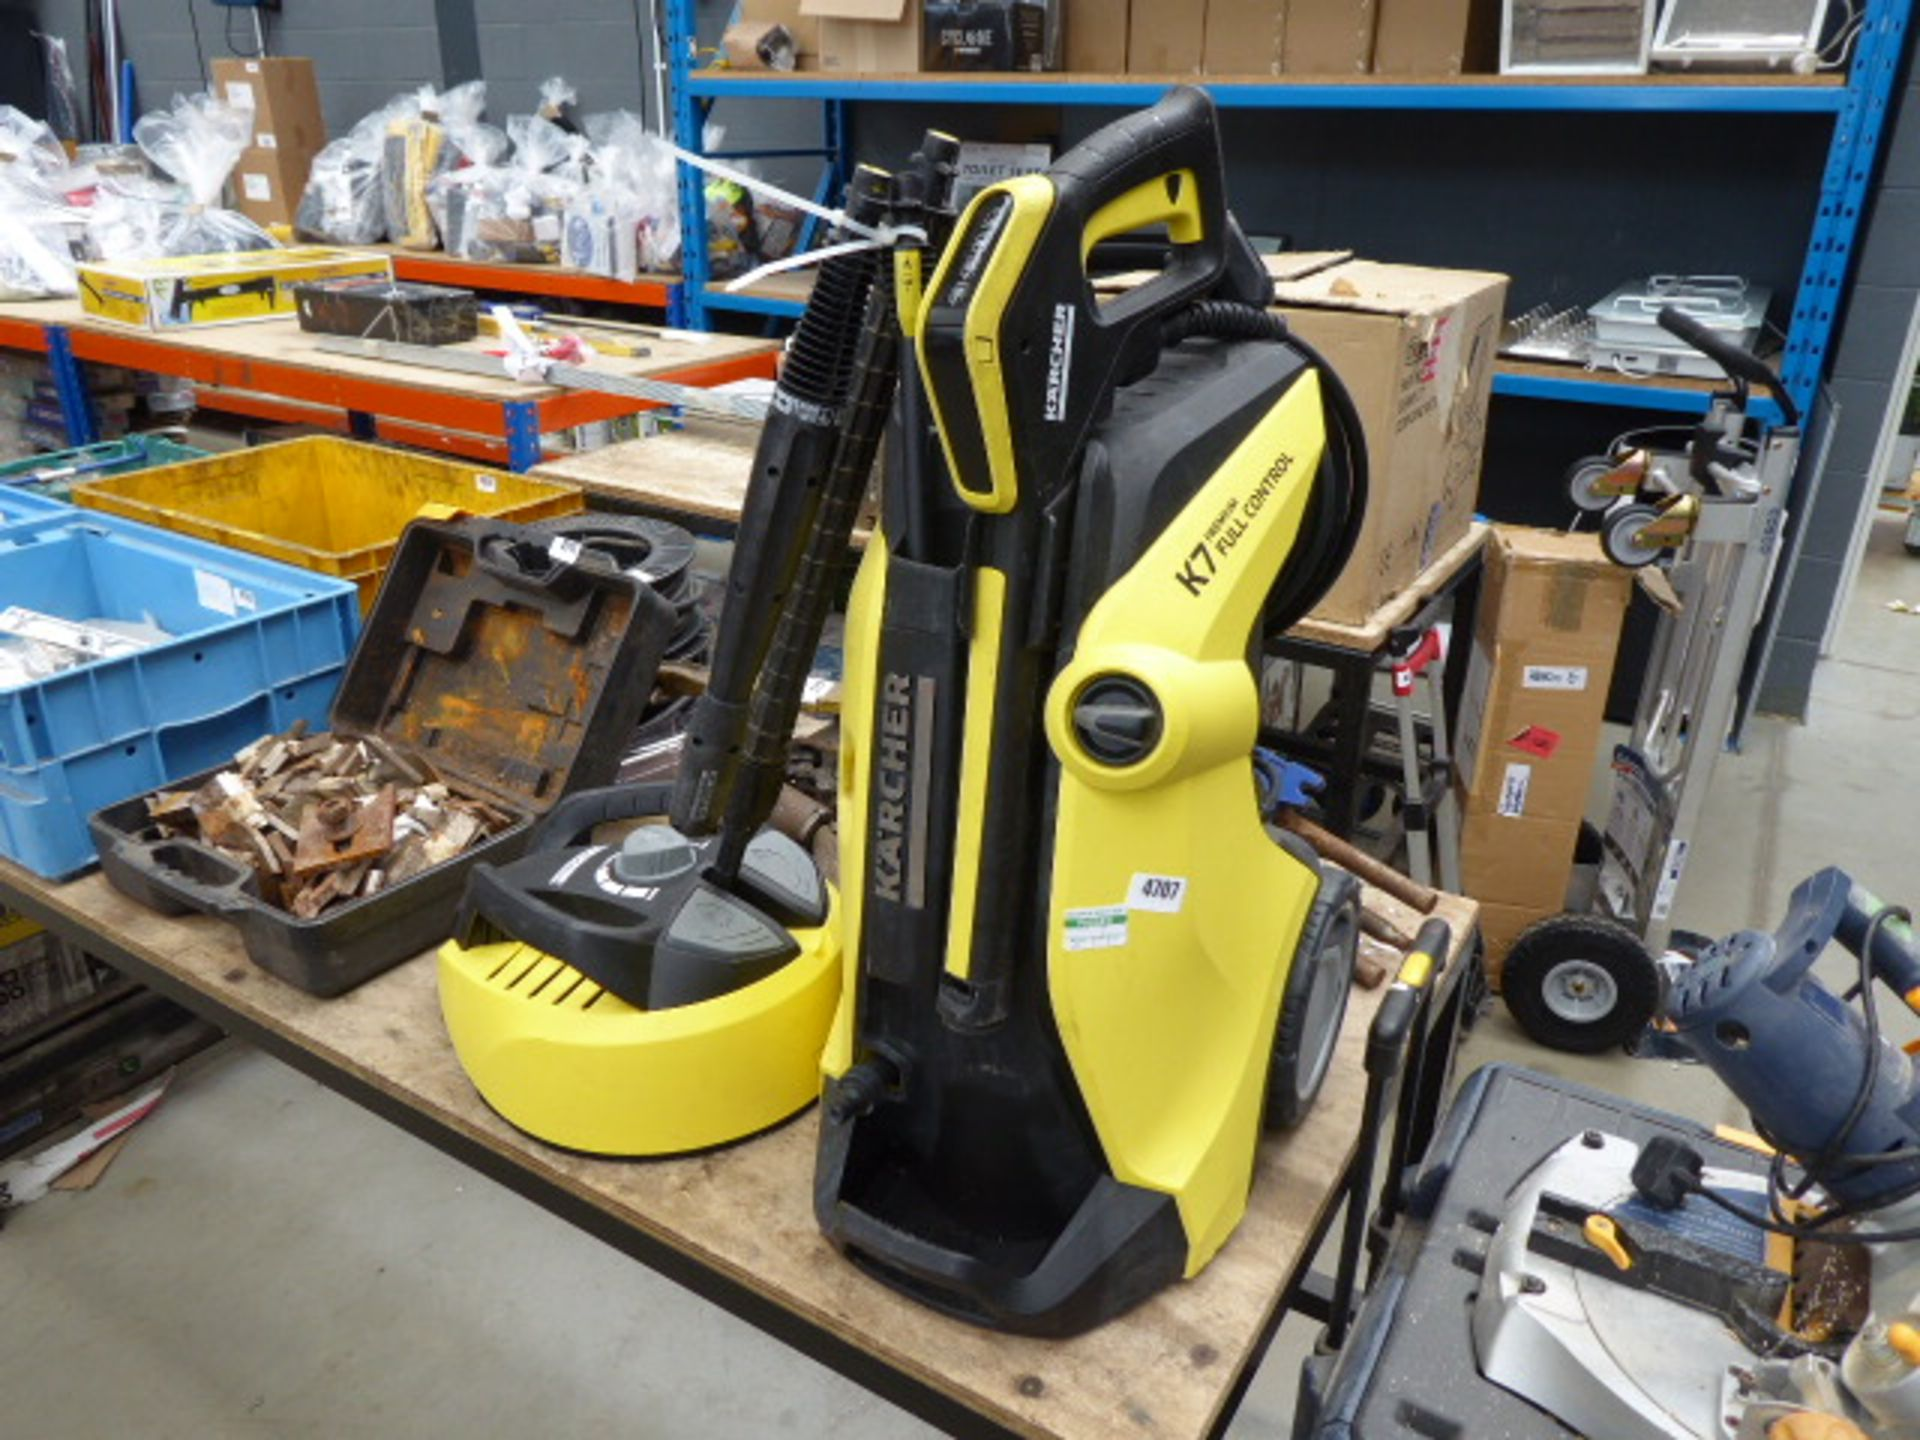 Lot 4707 - Karcher K7 electric pressure washer with patio cleaning head